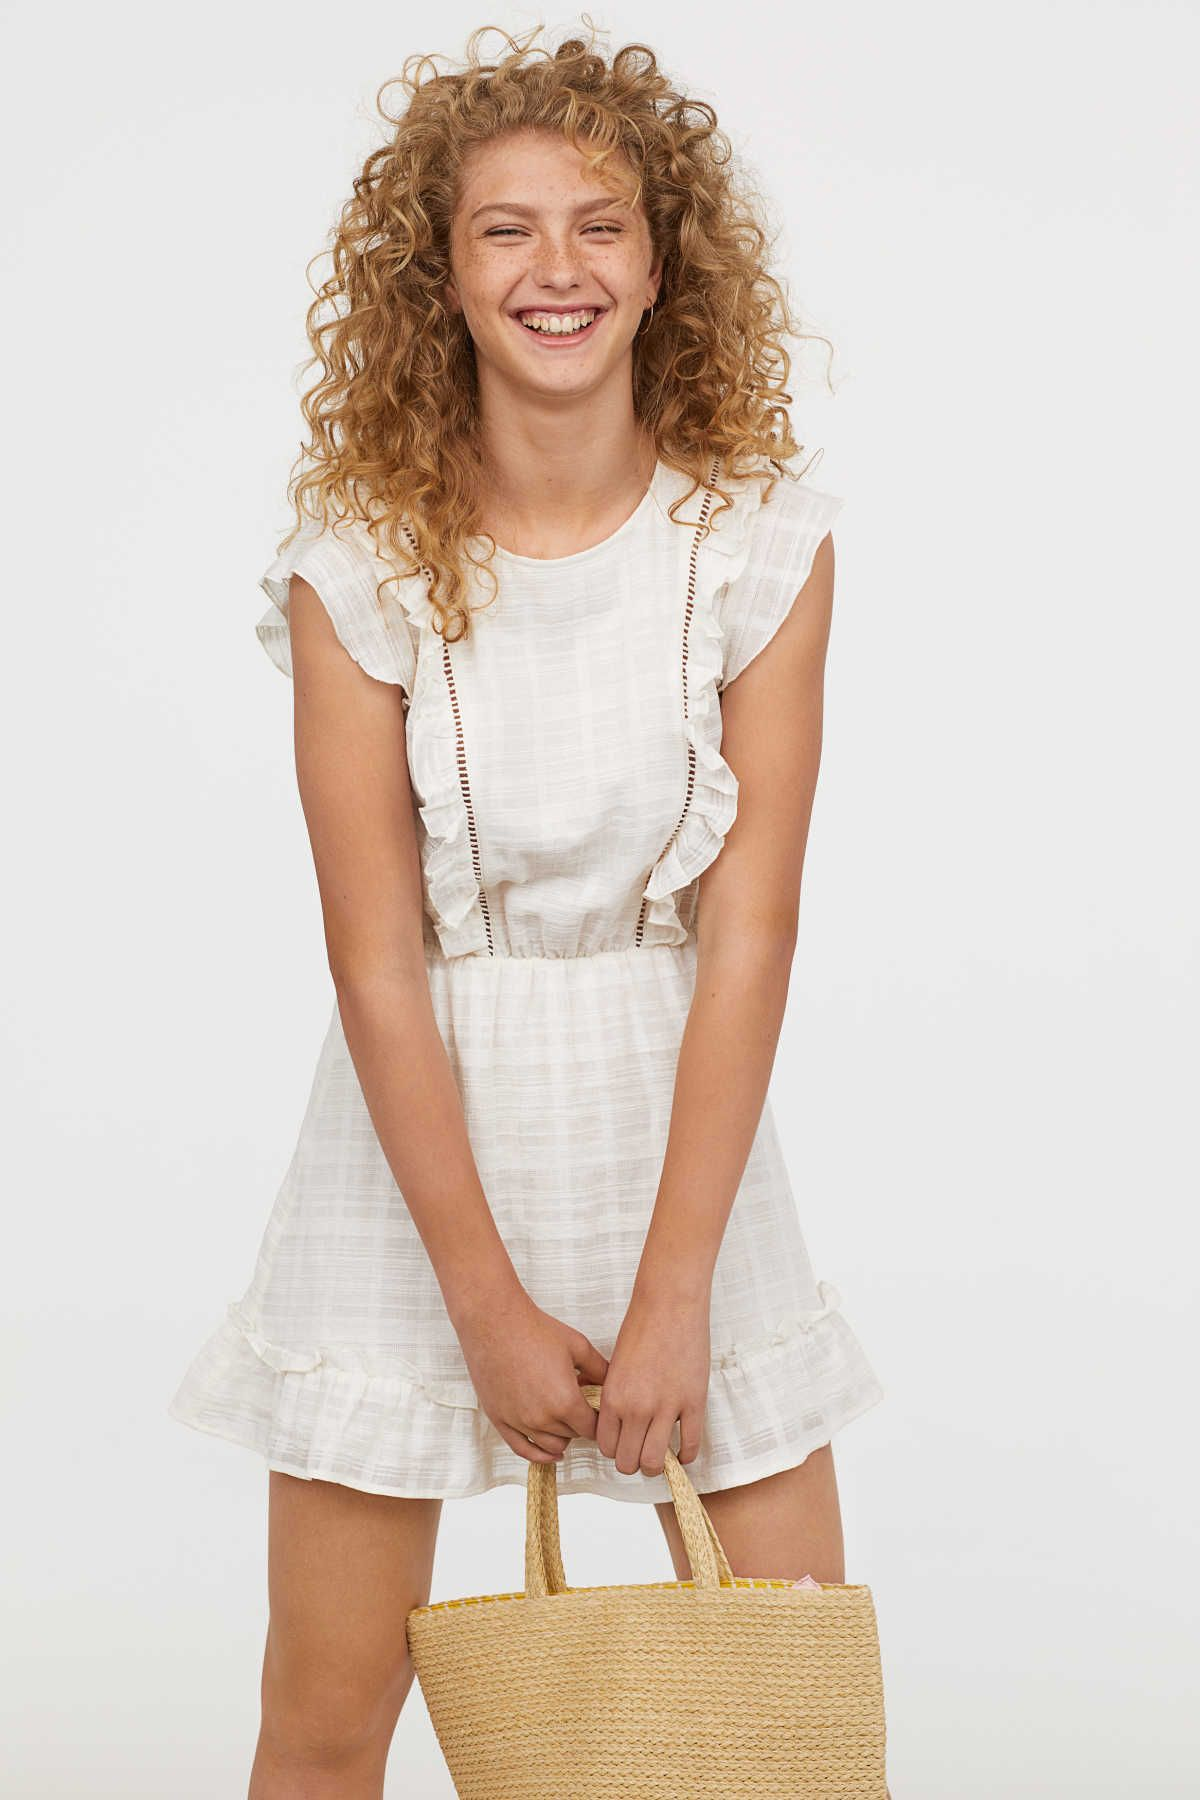 White short dress in airy woven cotton fabric with ruffles and